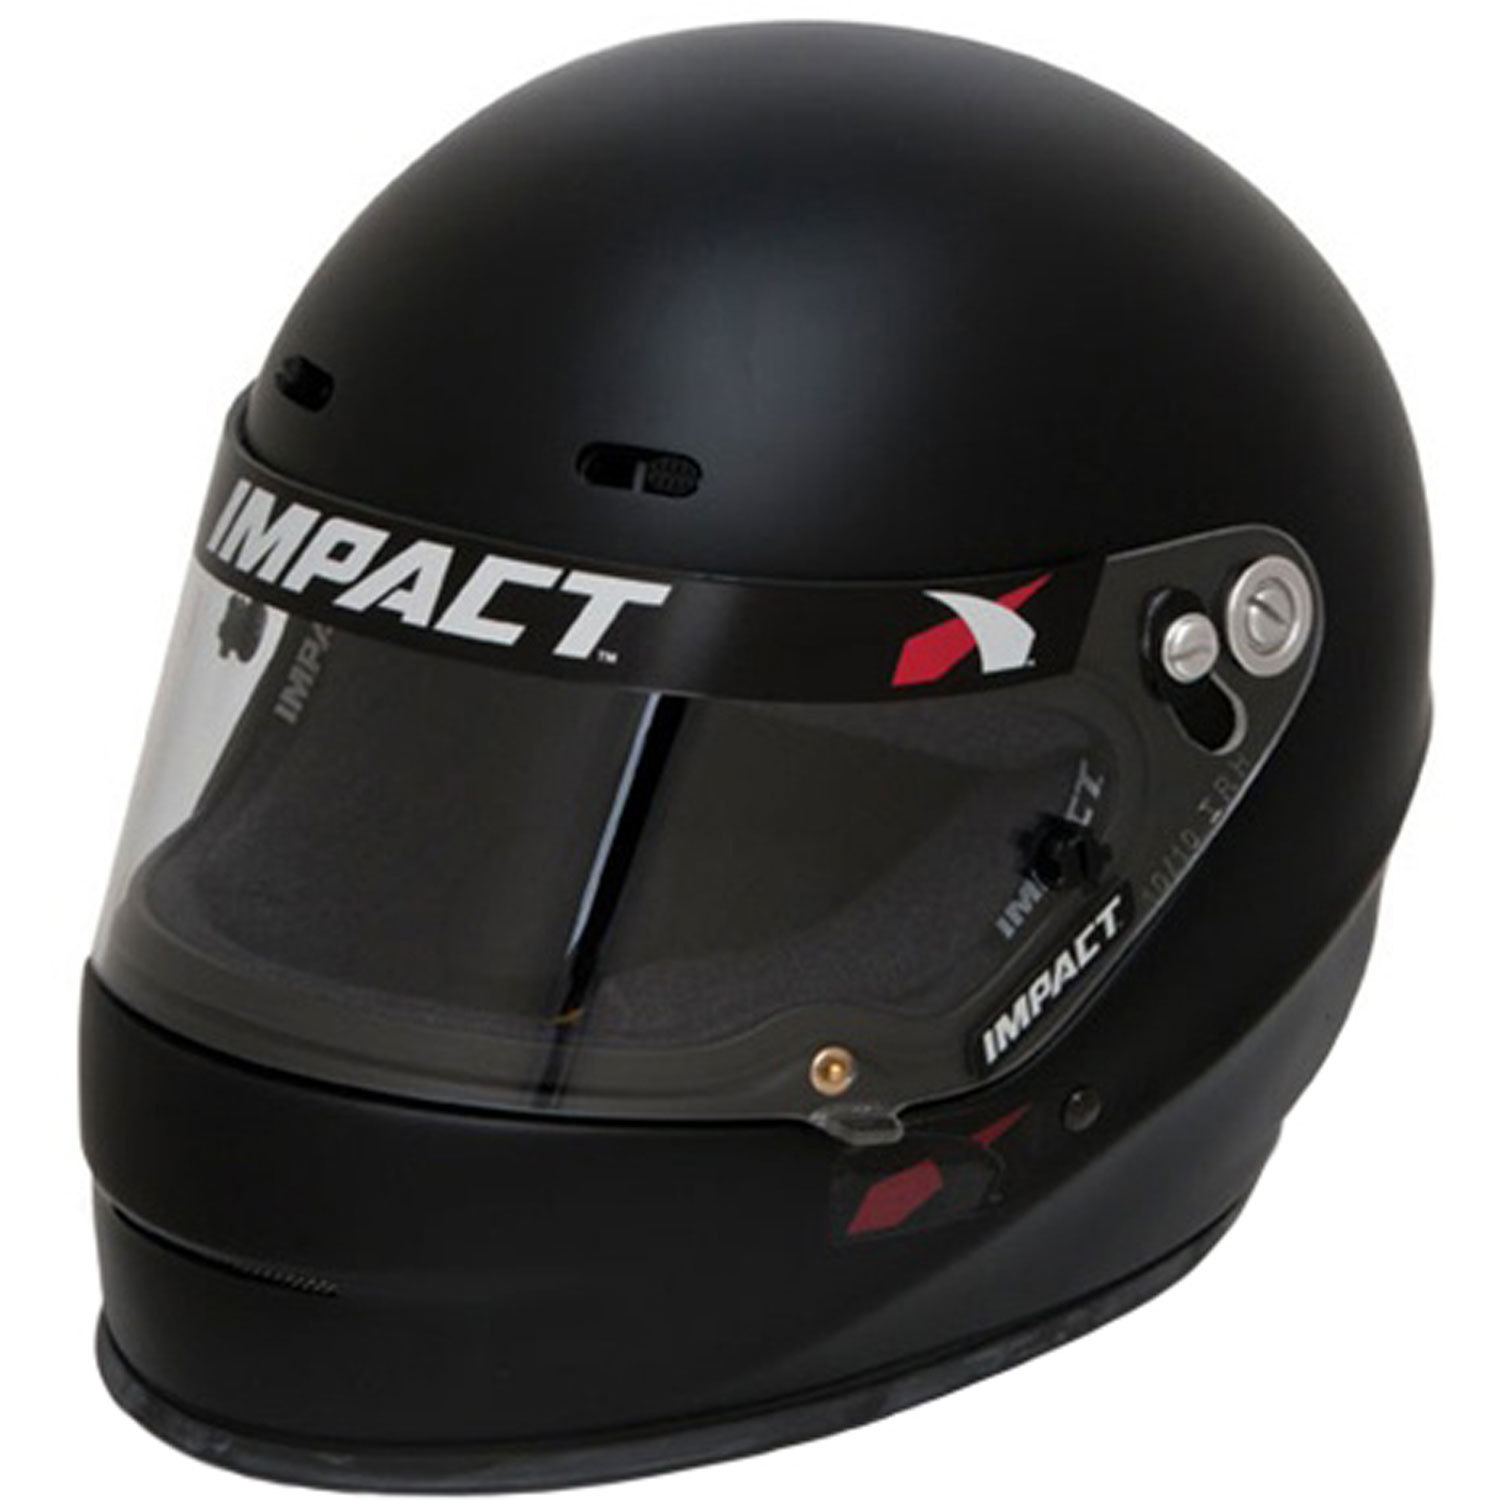 Impact Racing 14520412 Helmet, 1320, Full Face, Snell SA2020, Head and Neck Support Ready, Flat Black, Medium, Each